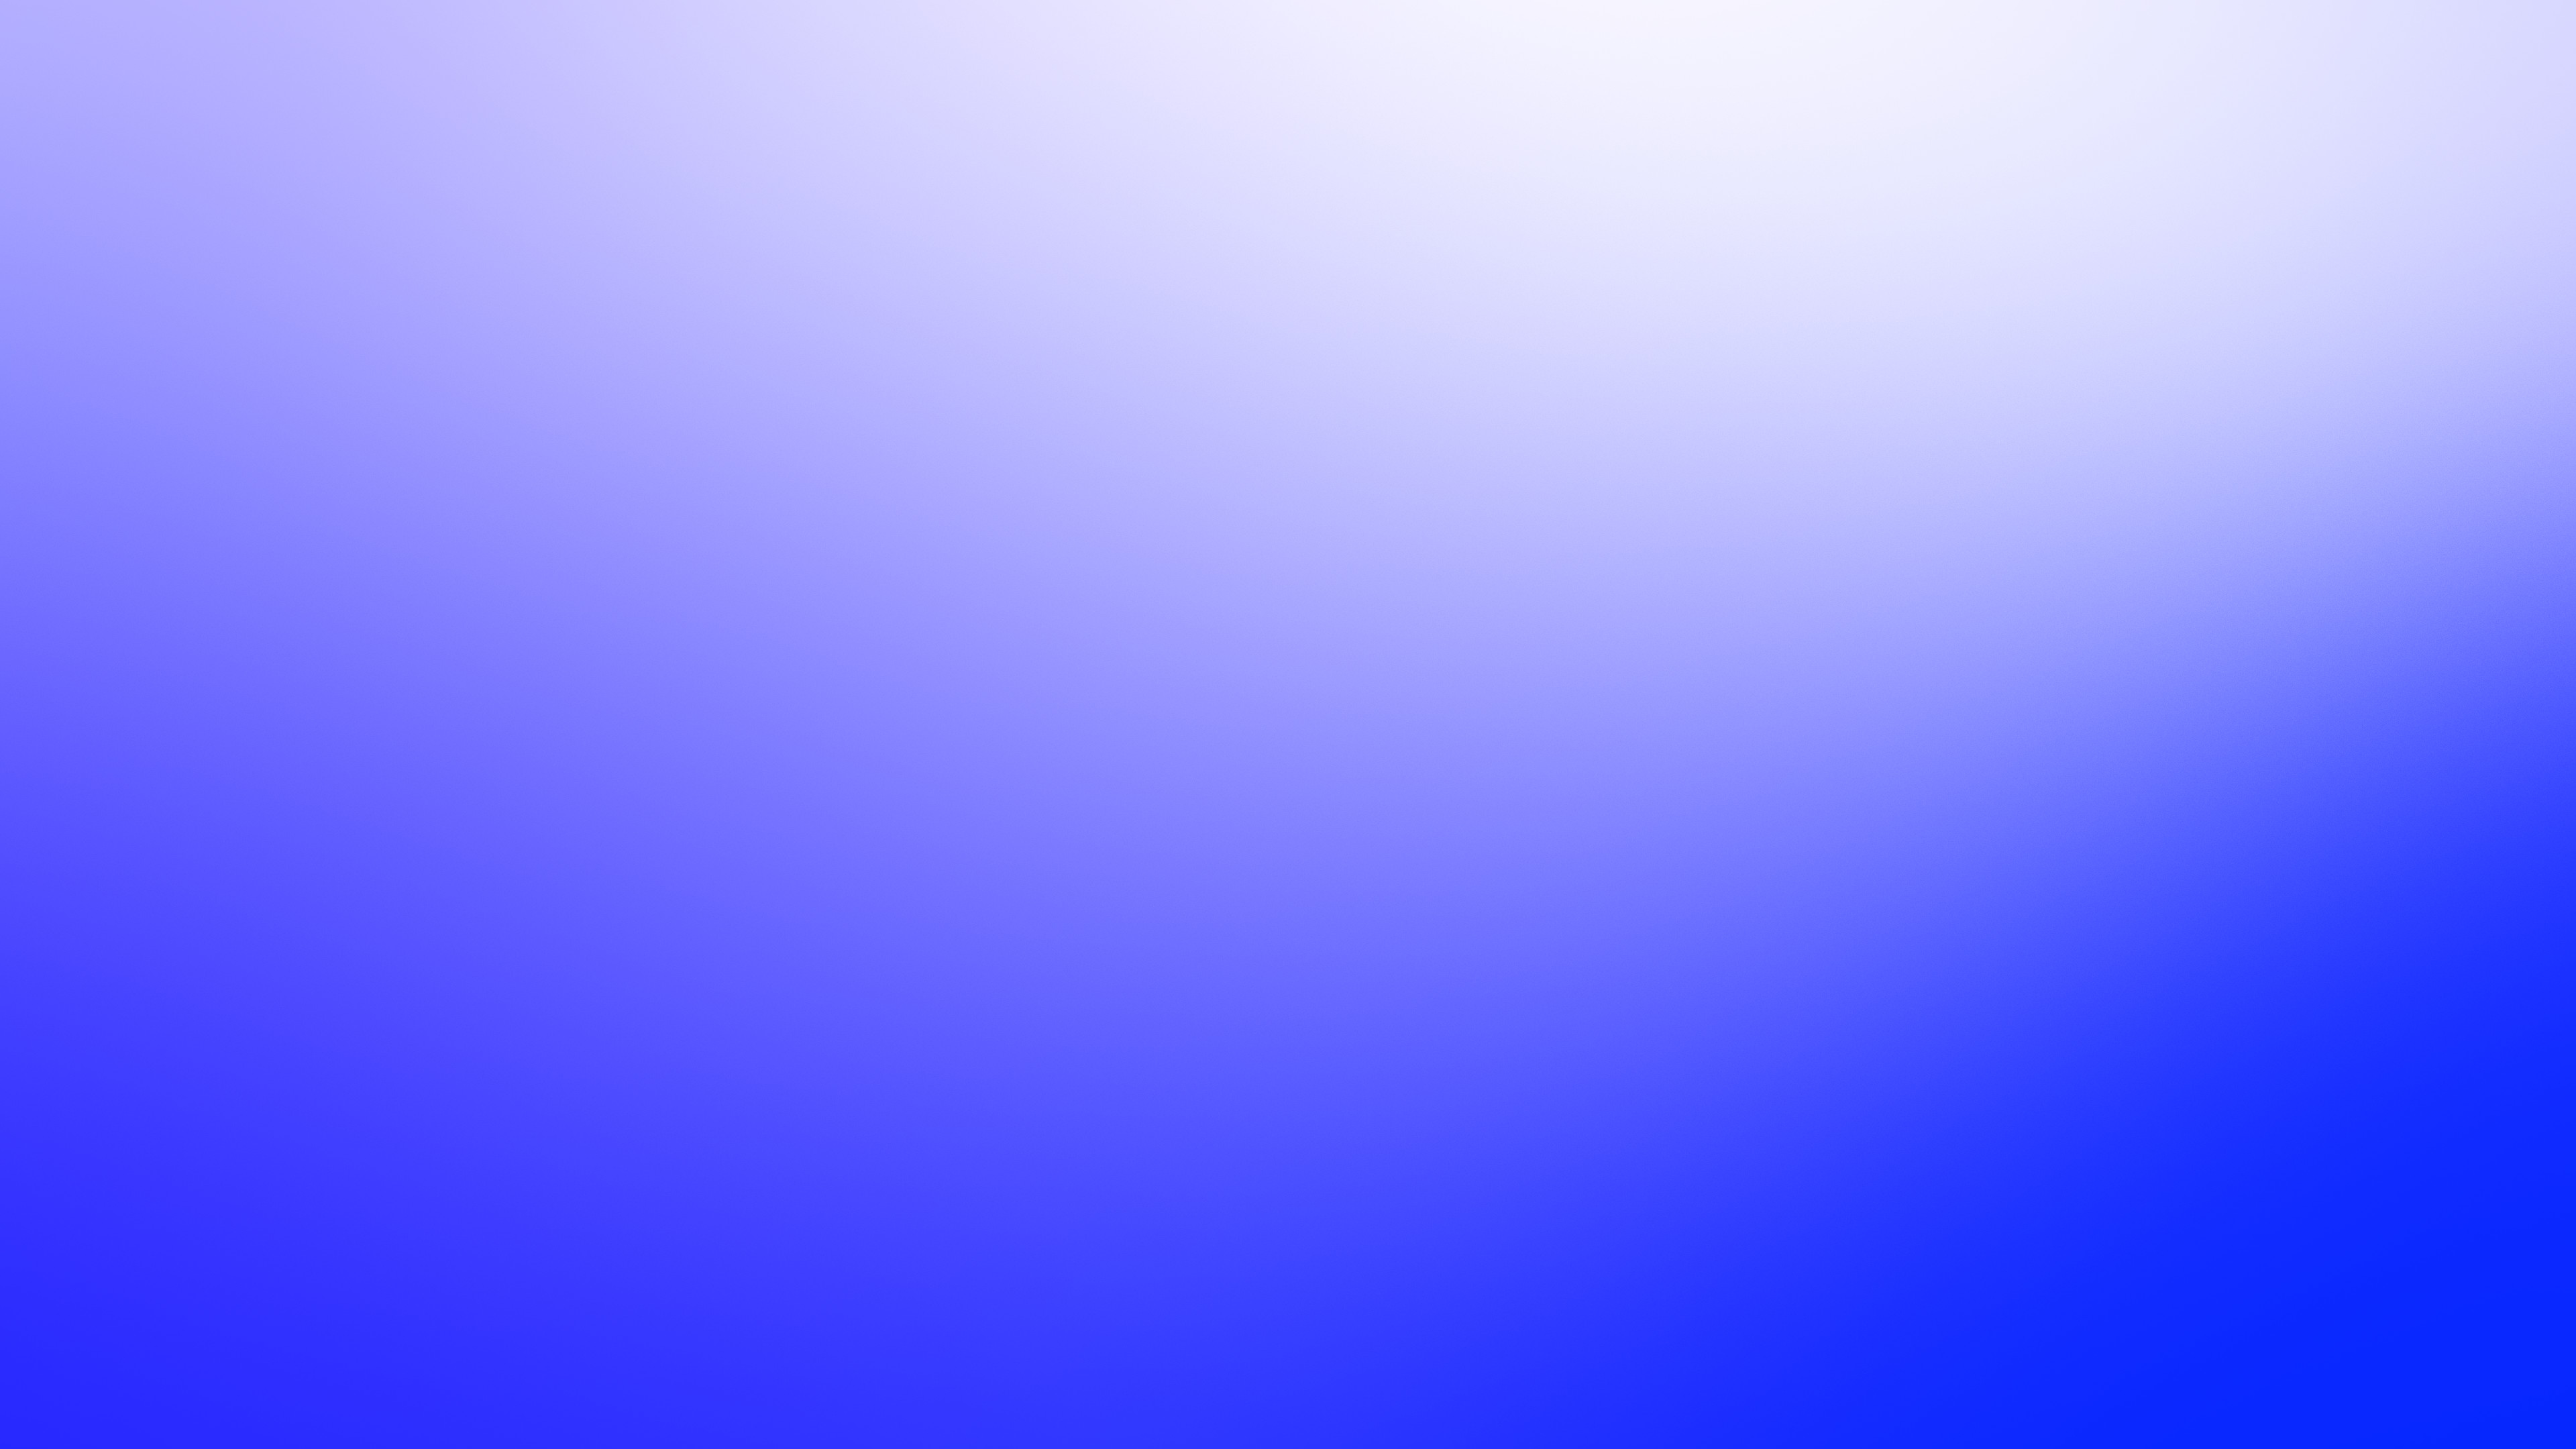 Wallpaper 4k Blue Blur Color 4k 4k wallpapers blue wallpapers